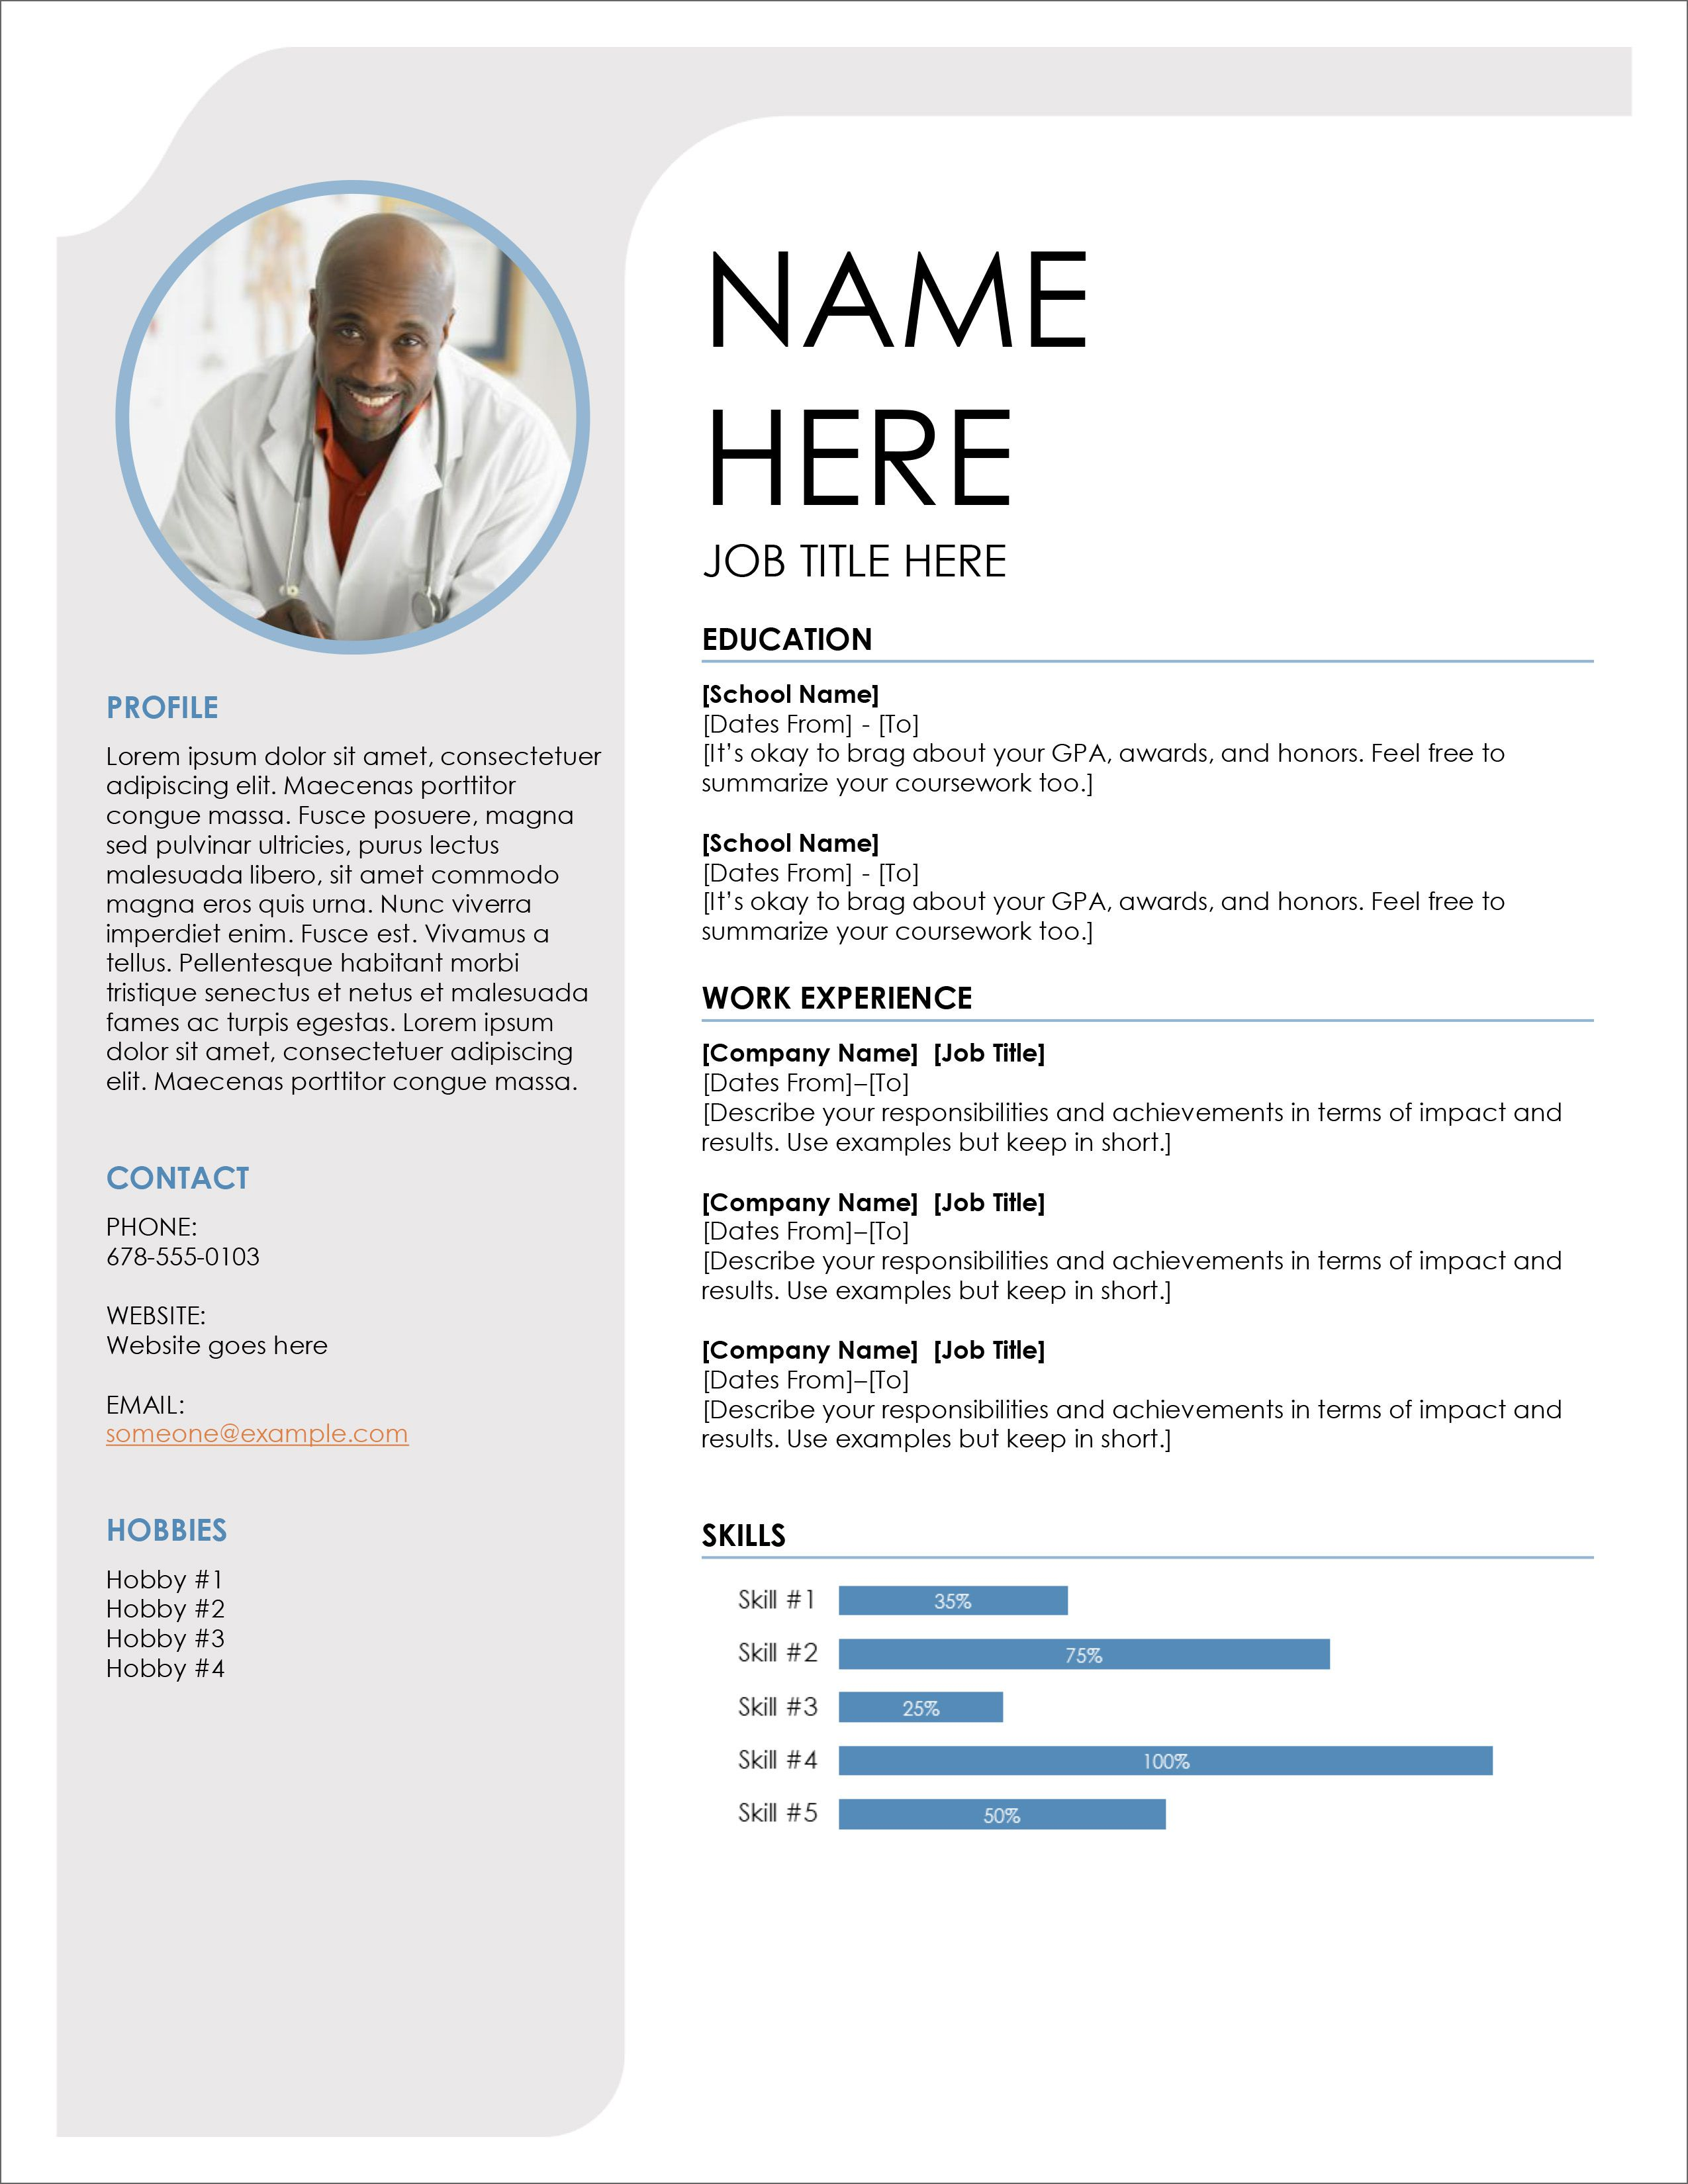 007 Phenomenal Resume Template Word Download Highest Clarity  For Fresher In Format Free 2020Full